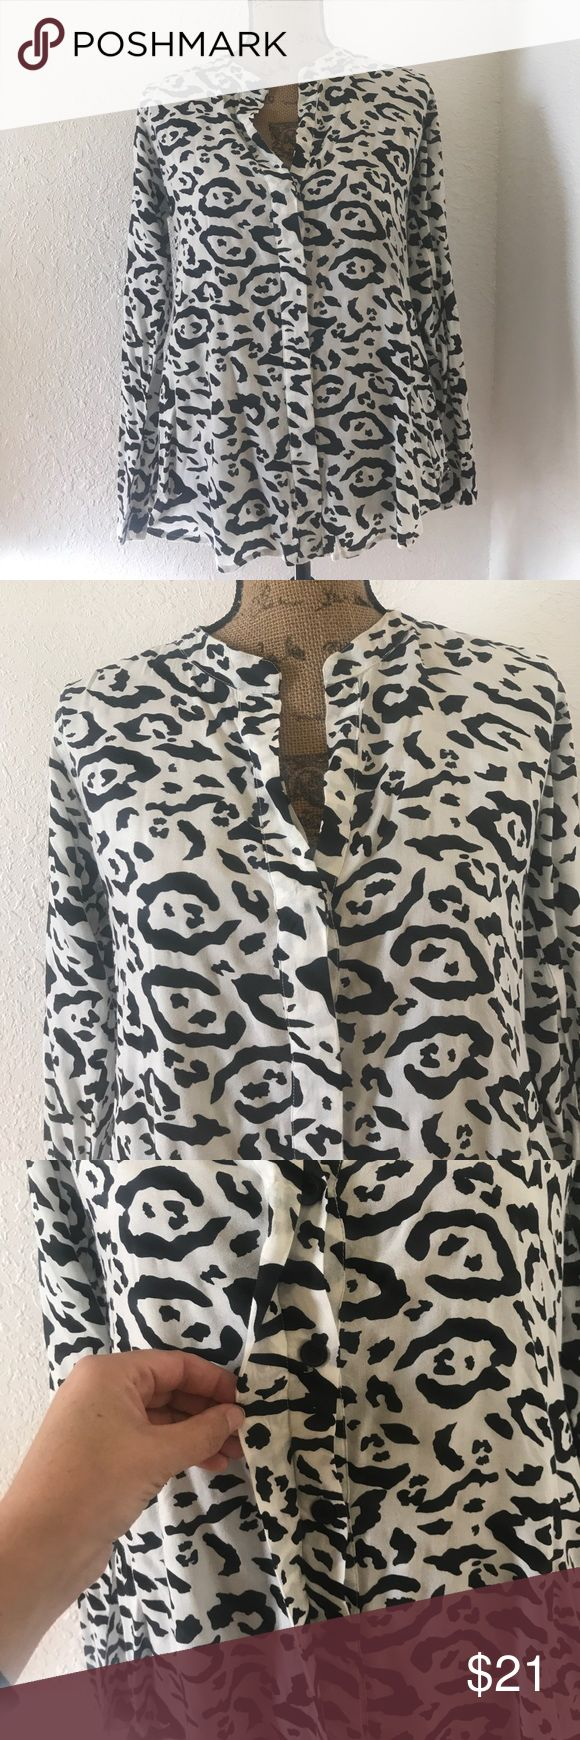 """Billabong Leopard Print Button Up Blouse FIRM PRICE + 4th & Bleeker for Billabong brand, black & white leopard print, button up Blouse. 100% Rayon - feels & looks like linen. Size M - 20"""" armpit to armpit, 23"""" shoulder to bottom hem, 24"""" sleeve length. In EUC - worn 2x's, no rips, stains or holes.  Style with black or blue jeans, shorts or skirts. Accessorize with hot pink, red or silver. Non smoking home. No trades. Billabong Tops Blouses"""